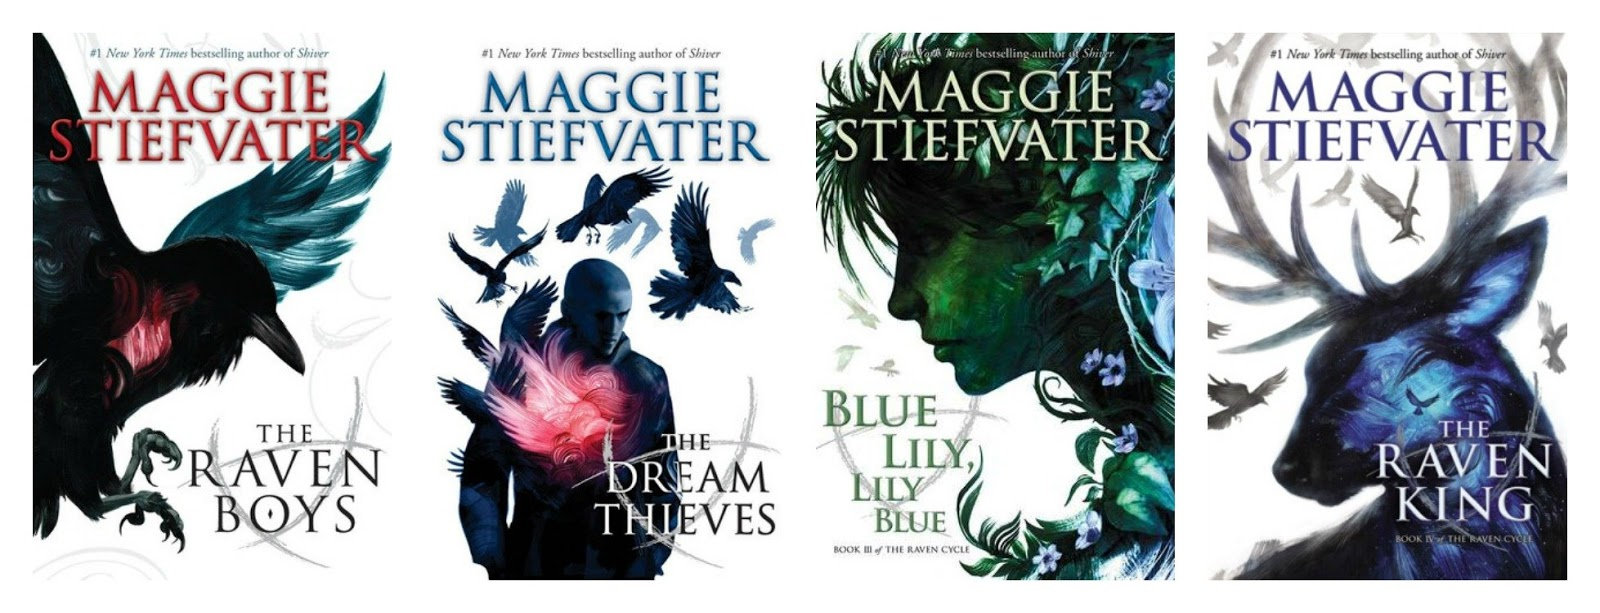 The-Raven-Cycle-Maggie-Stiefvater